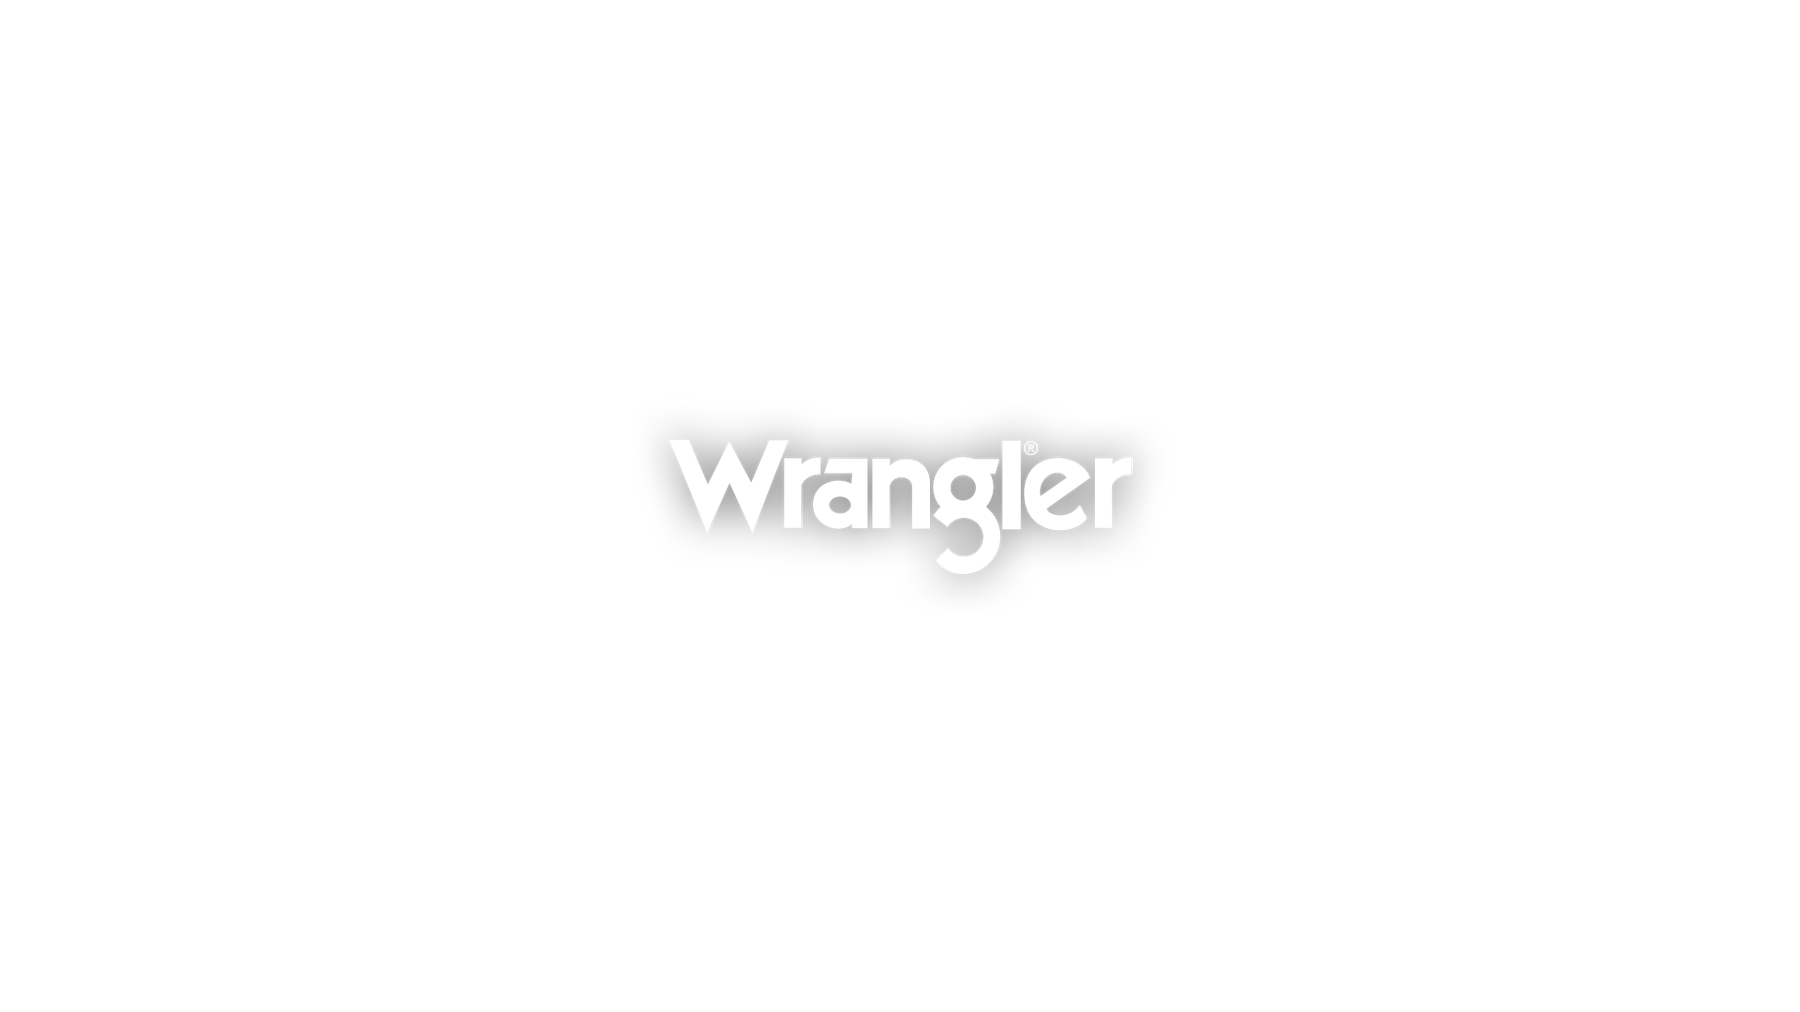 Wrangler logo center